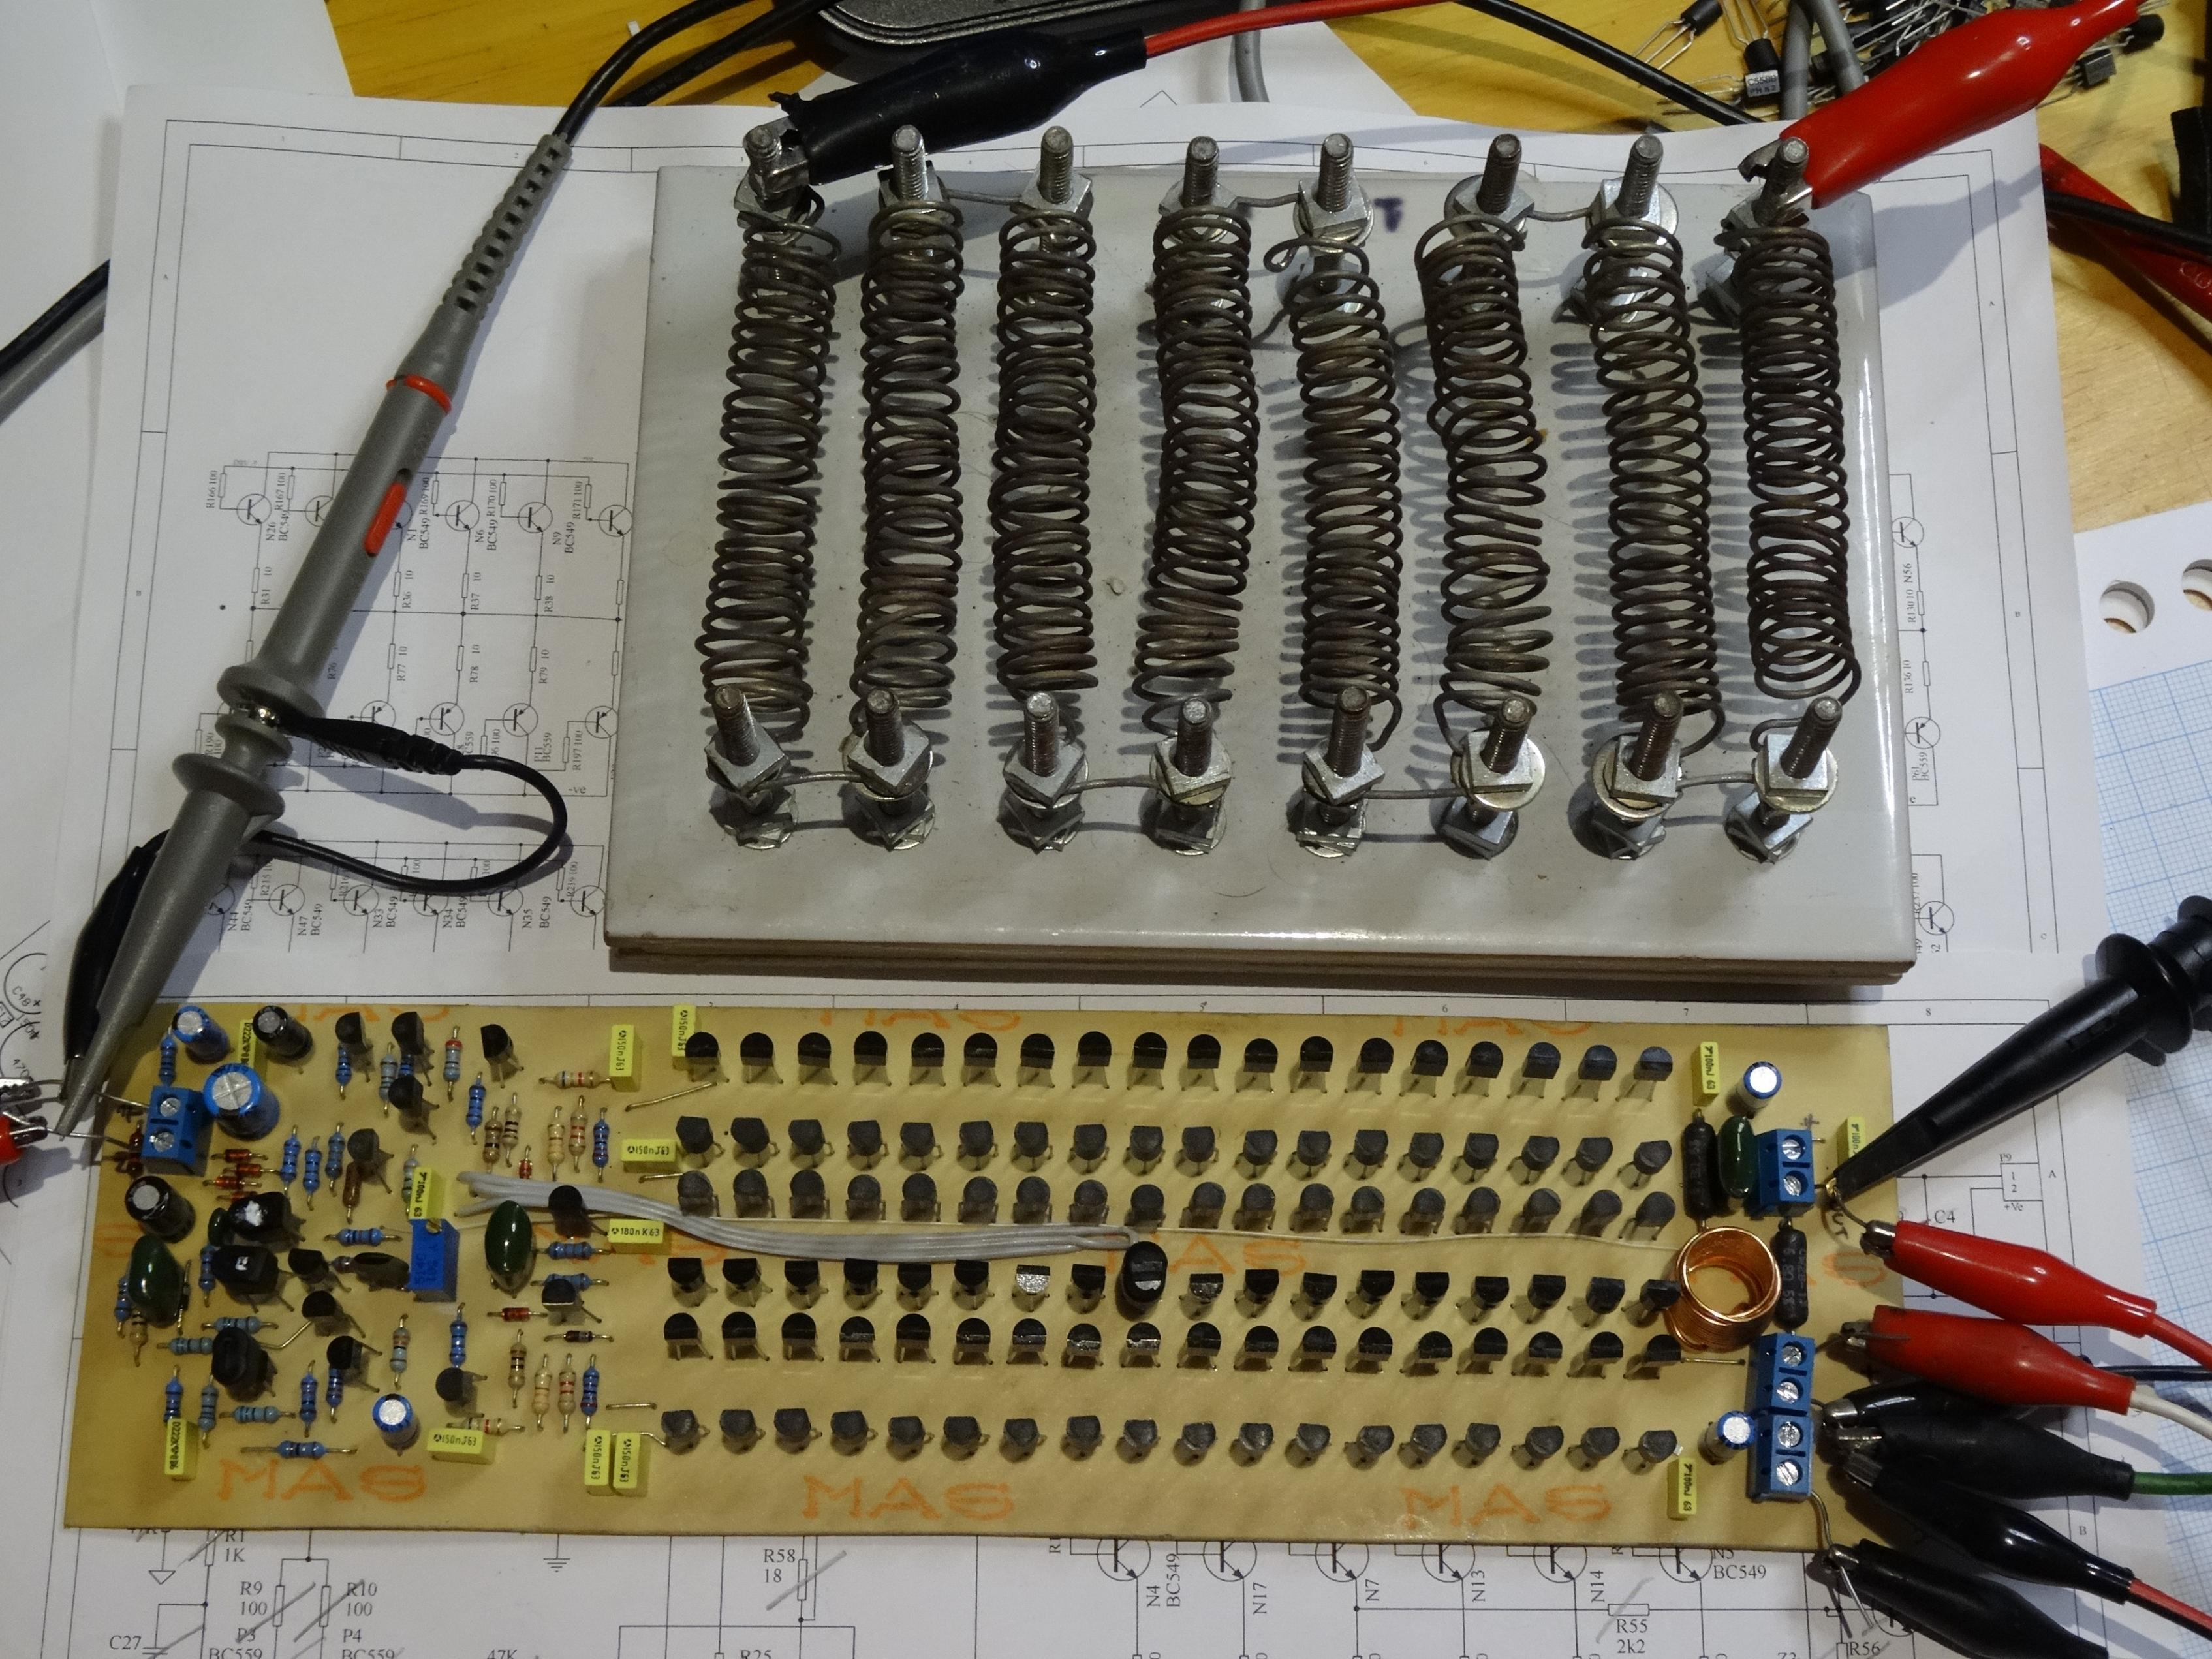 The Amplifier of 100 Transistors (output devices) - diyAudio